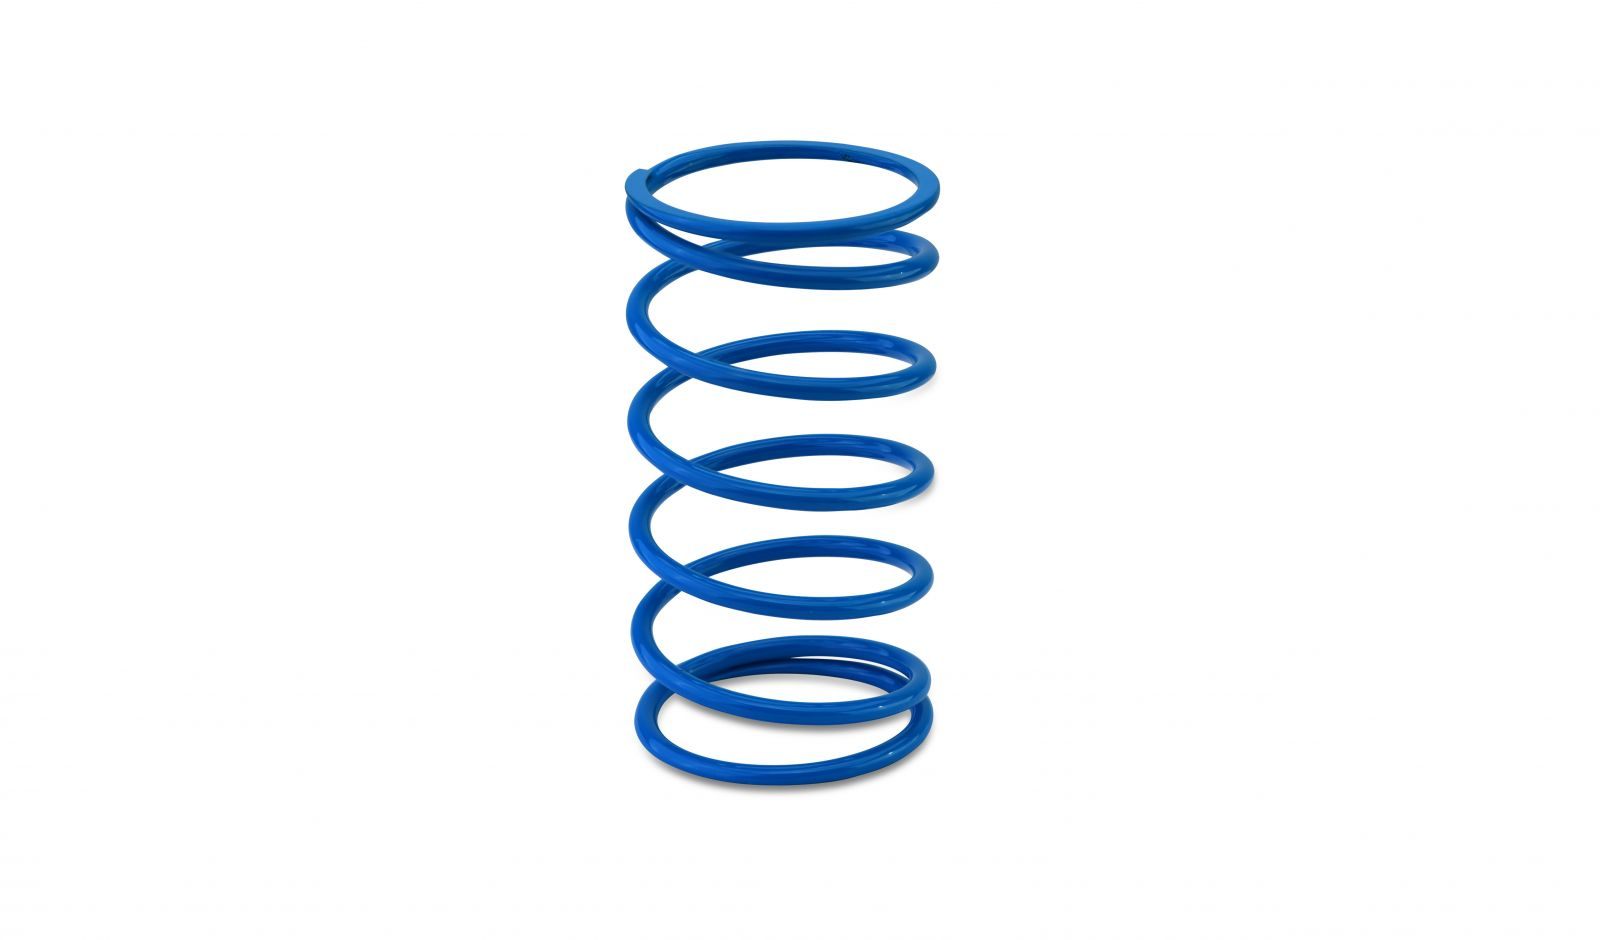 athena scooter clutch springs - 329622A image